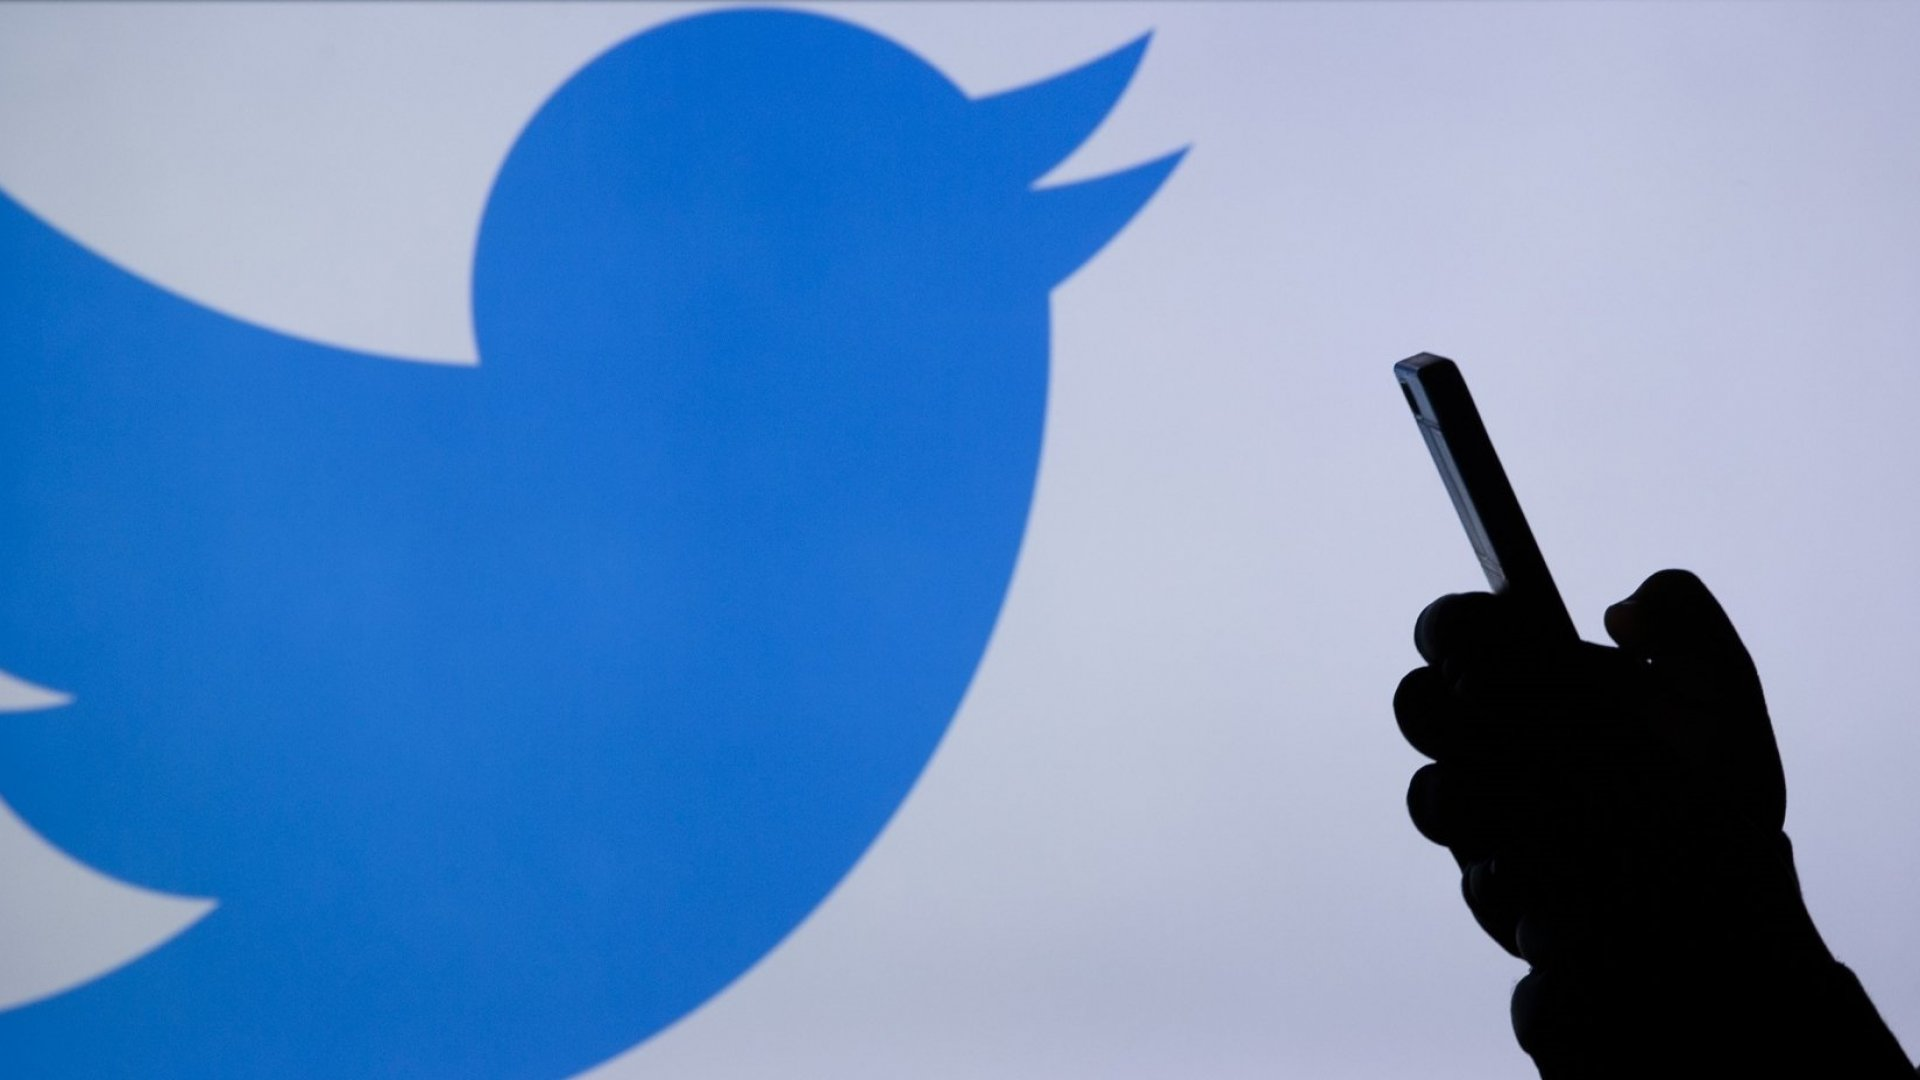 Why Twitter's Latest Product Change is a Move in the Wrong Direction